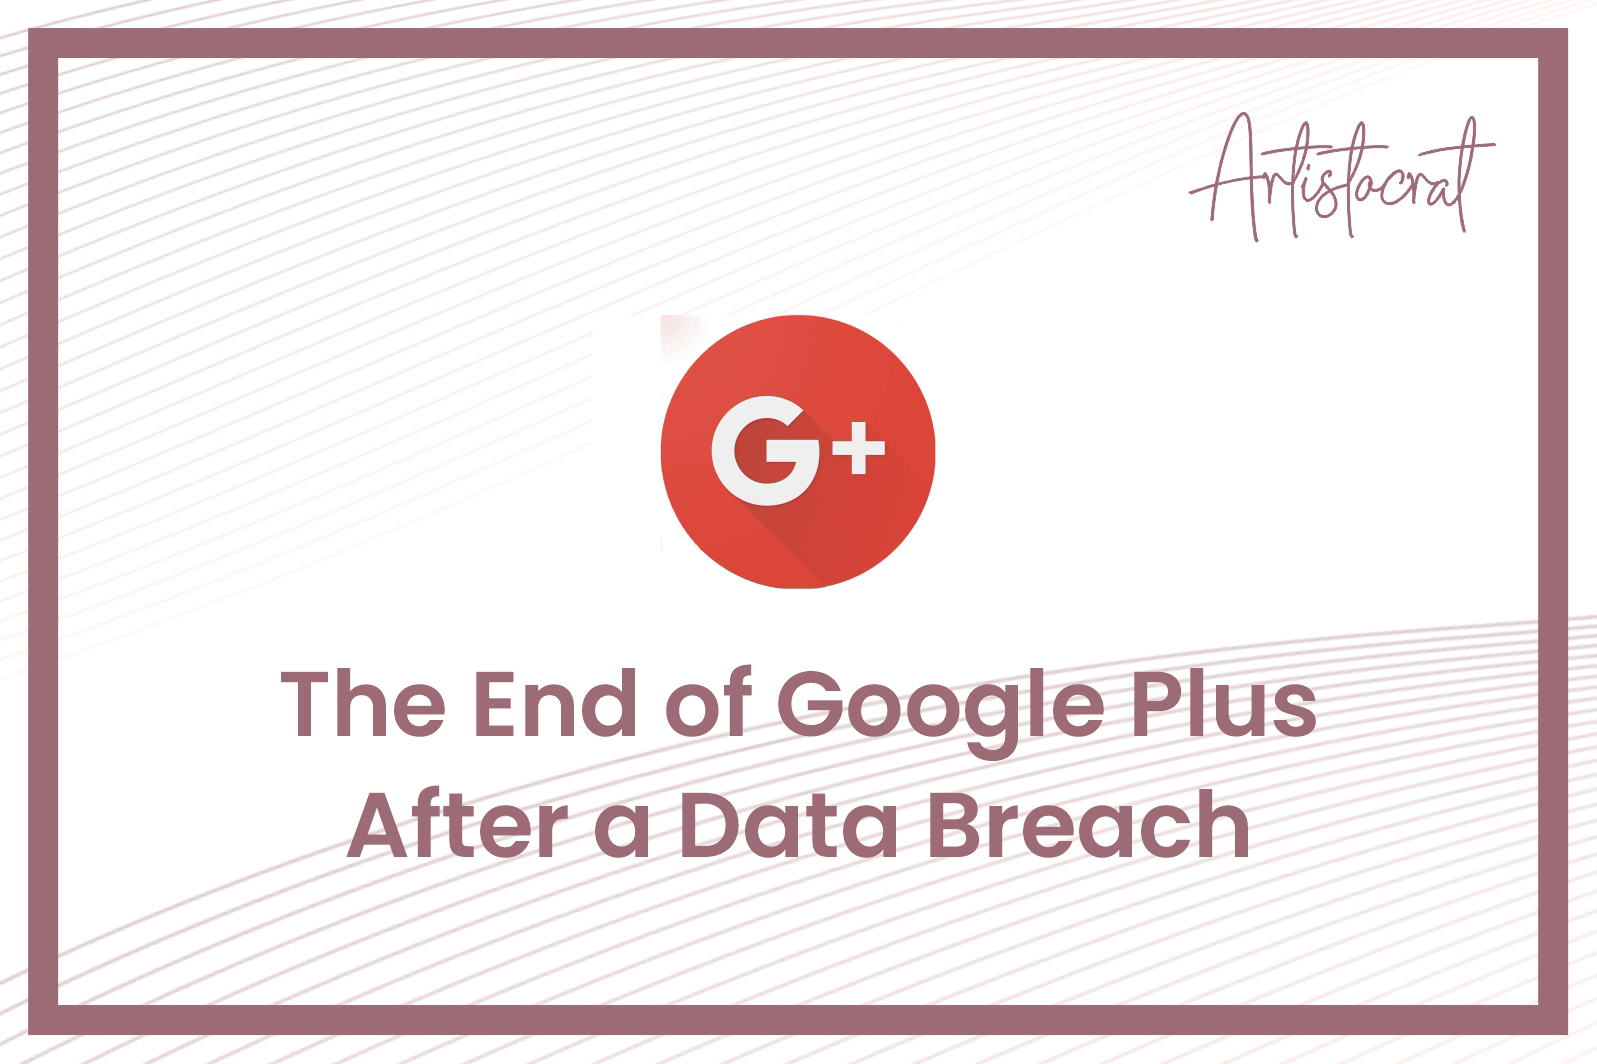 The-End-of-Google-Plus-After-Data-Breach